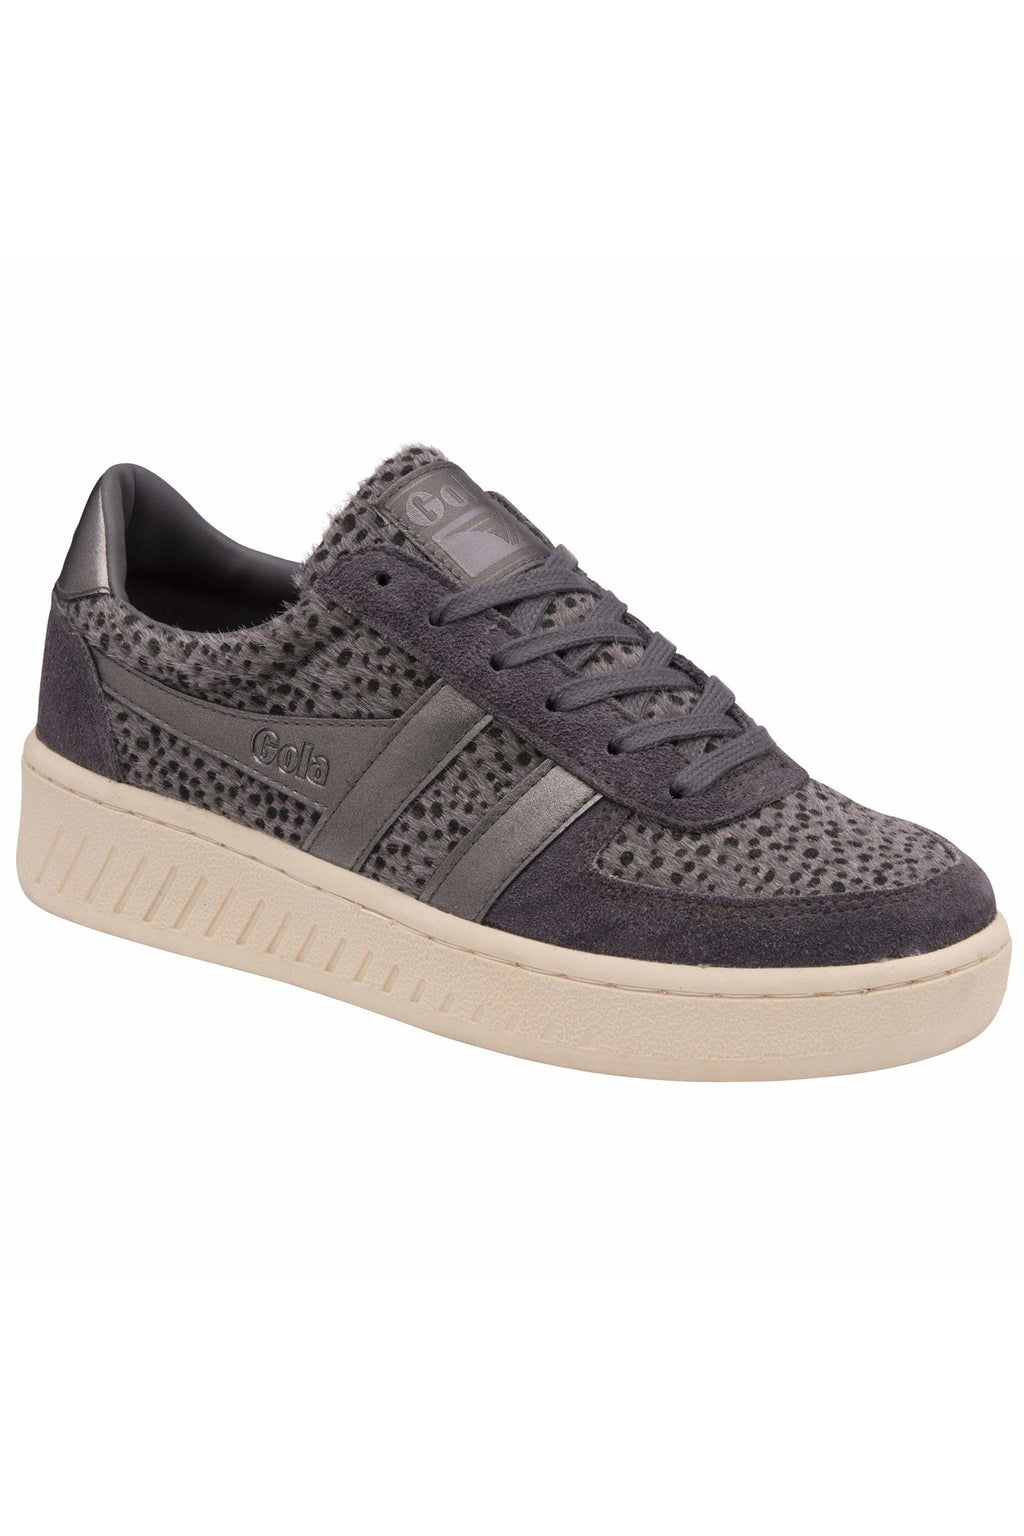 Gola Grandslam Savanna Cheetah Sneakers -- Pewter